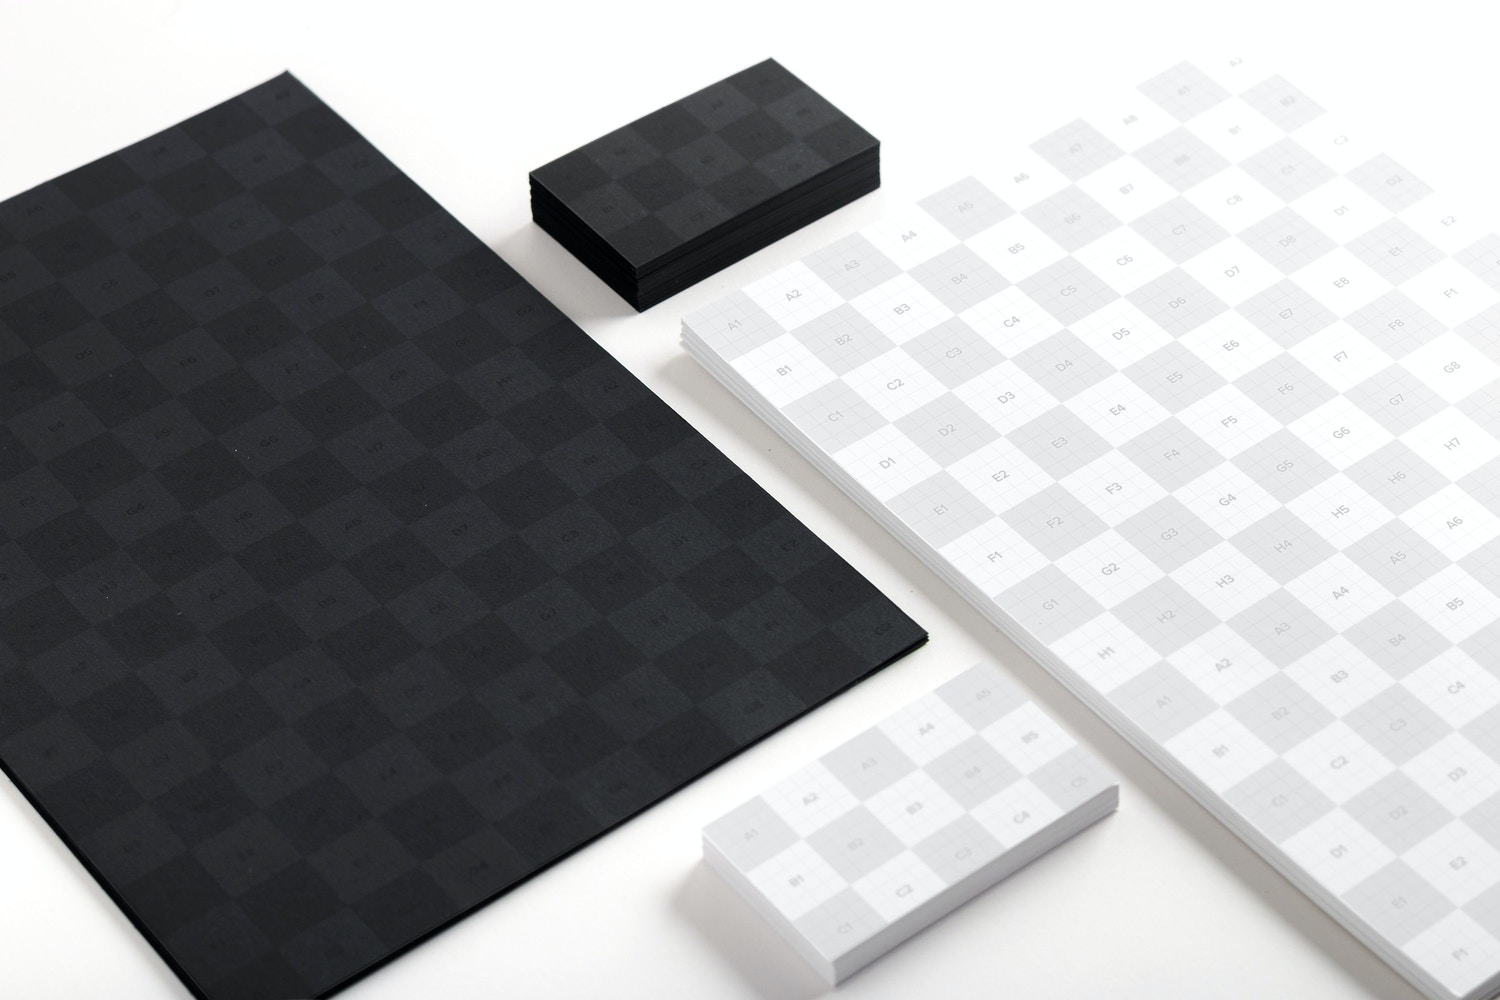 Black and White A4 and Business Cards Mockup 01